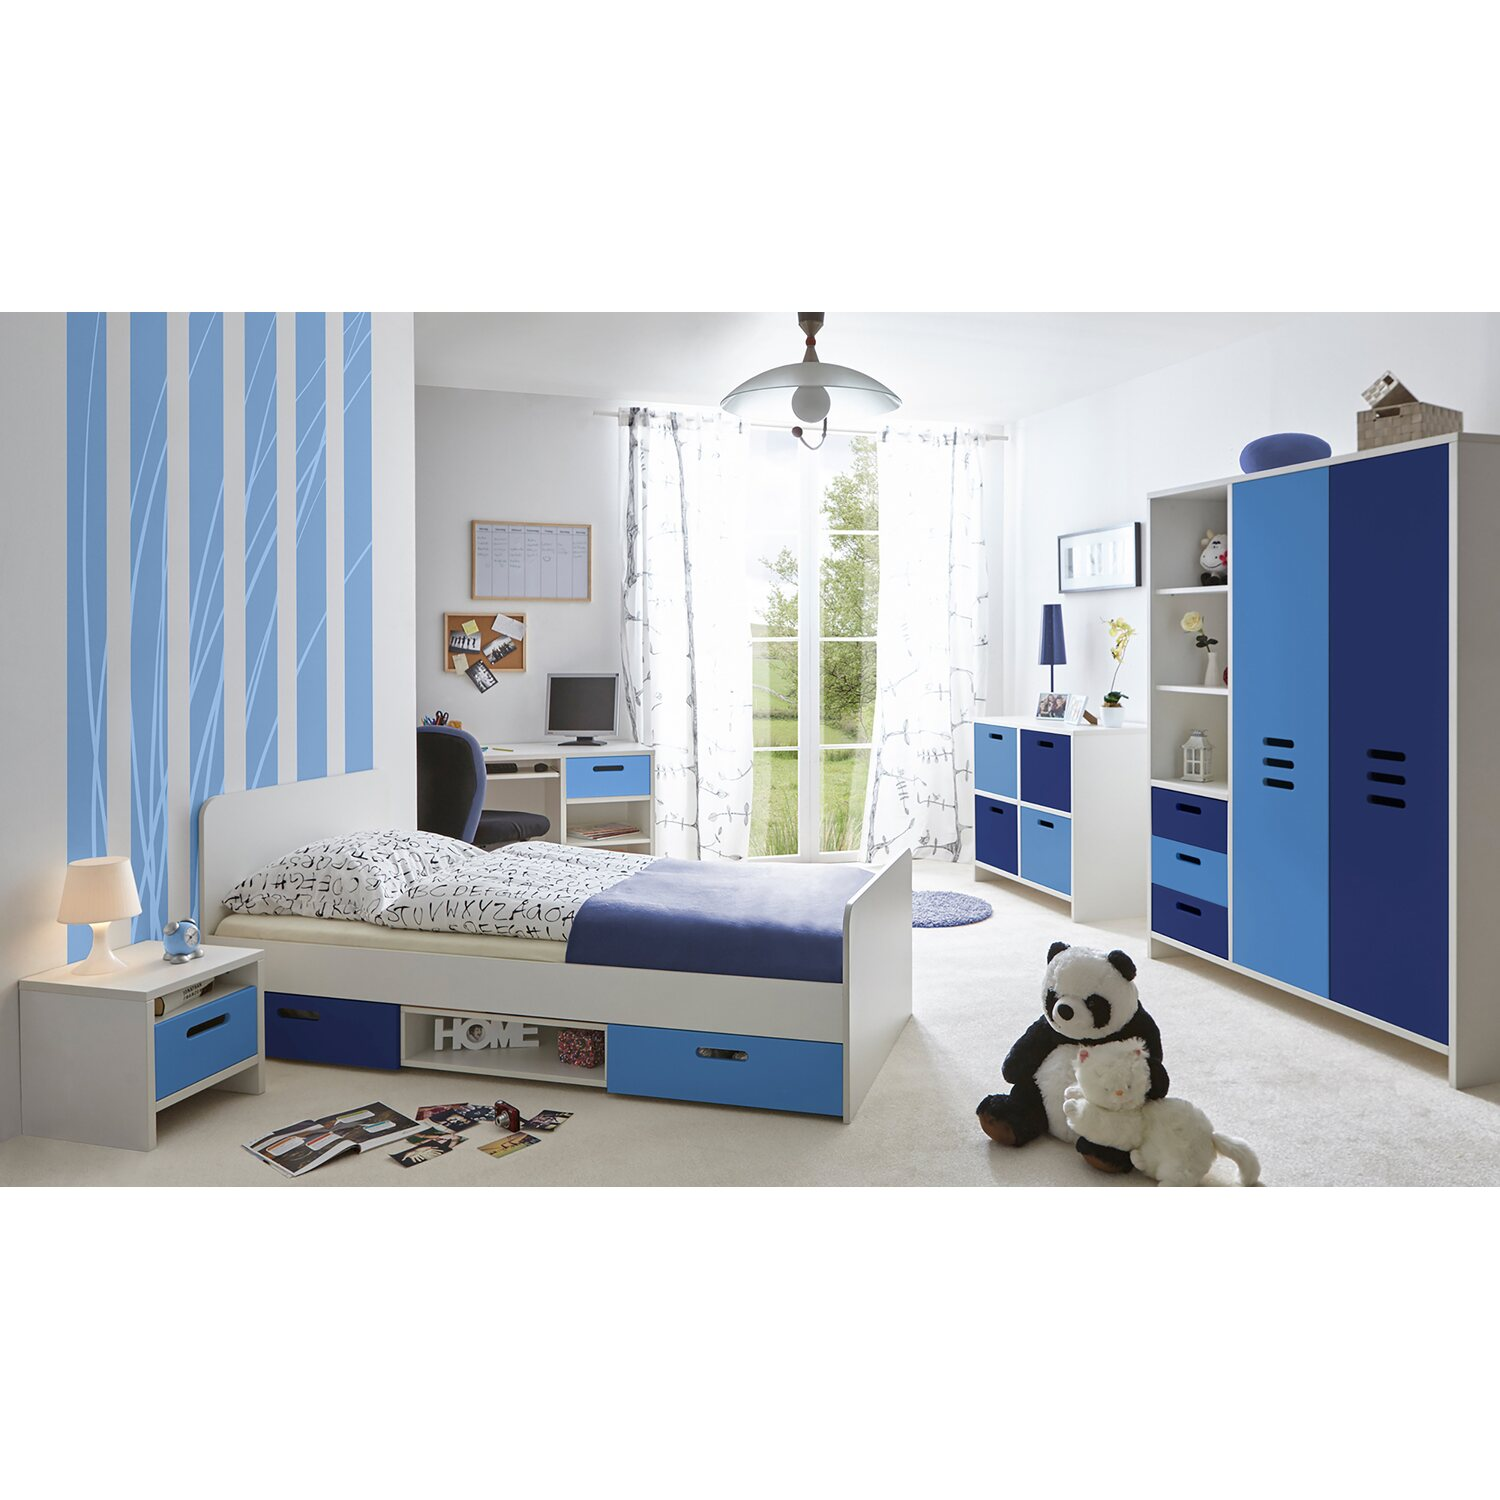 komplett kinderzimmer jugendzimmer online kaufen bei obi. Black Bedroom Furniture Sets. Home Design Ideas